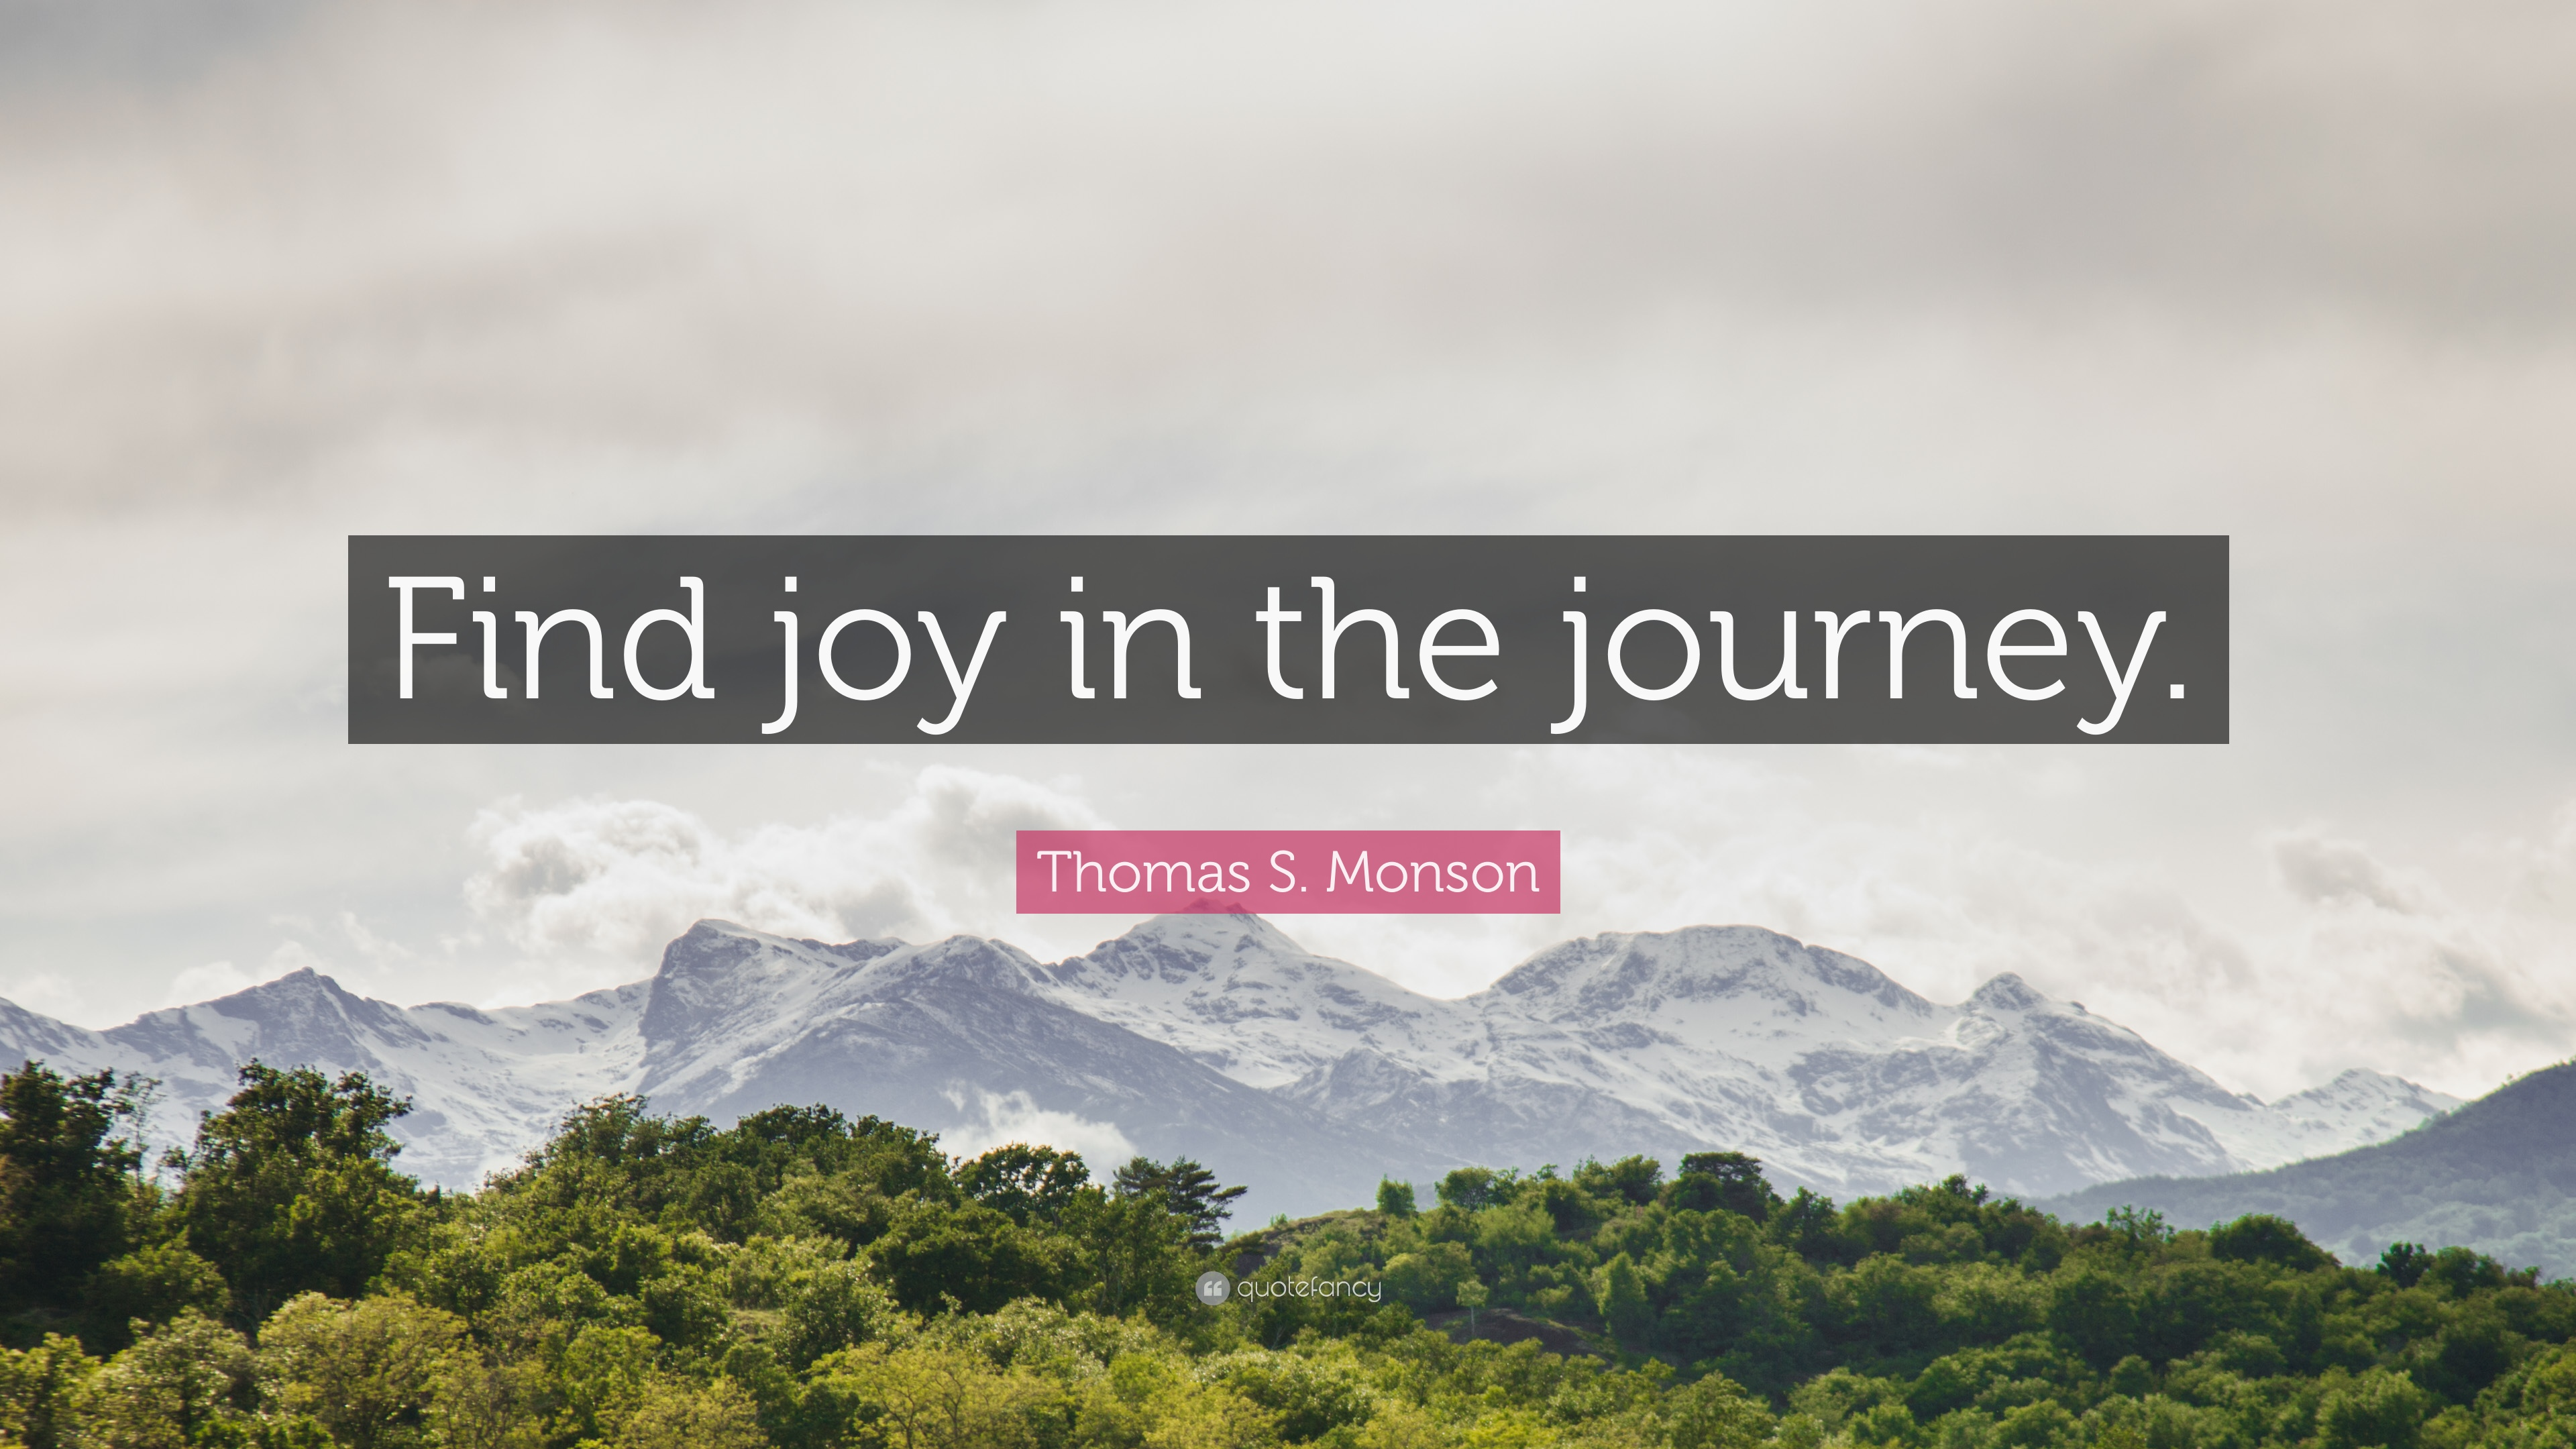 Thomas S Monson Quote Find Joy In The Journey 7 Wallpapers